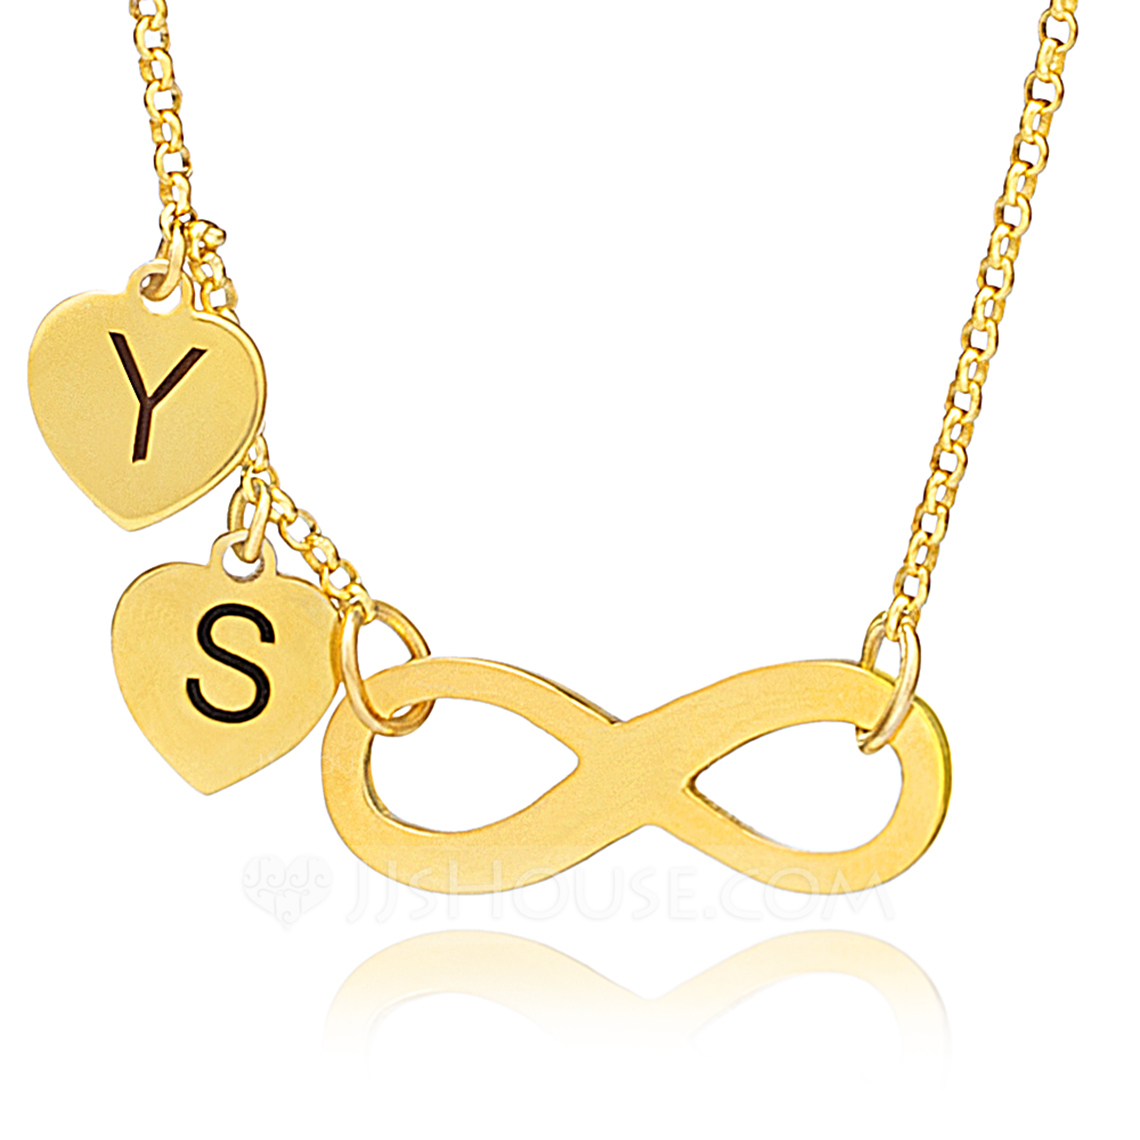 Custom 18k Gold Plated Silver Letter Two Initial Necklace Engraved Necklace Infinity Name Necklace - Birthday Gifts Mother's Day Gifts